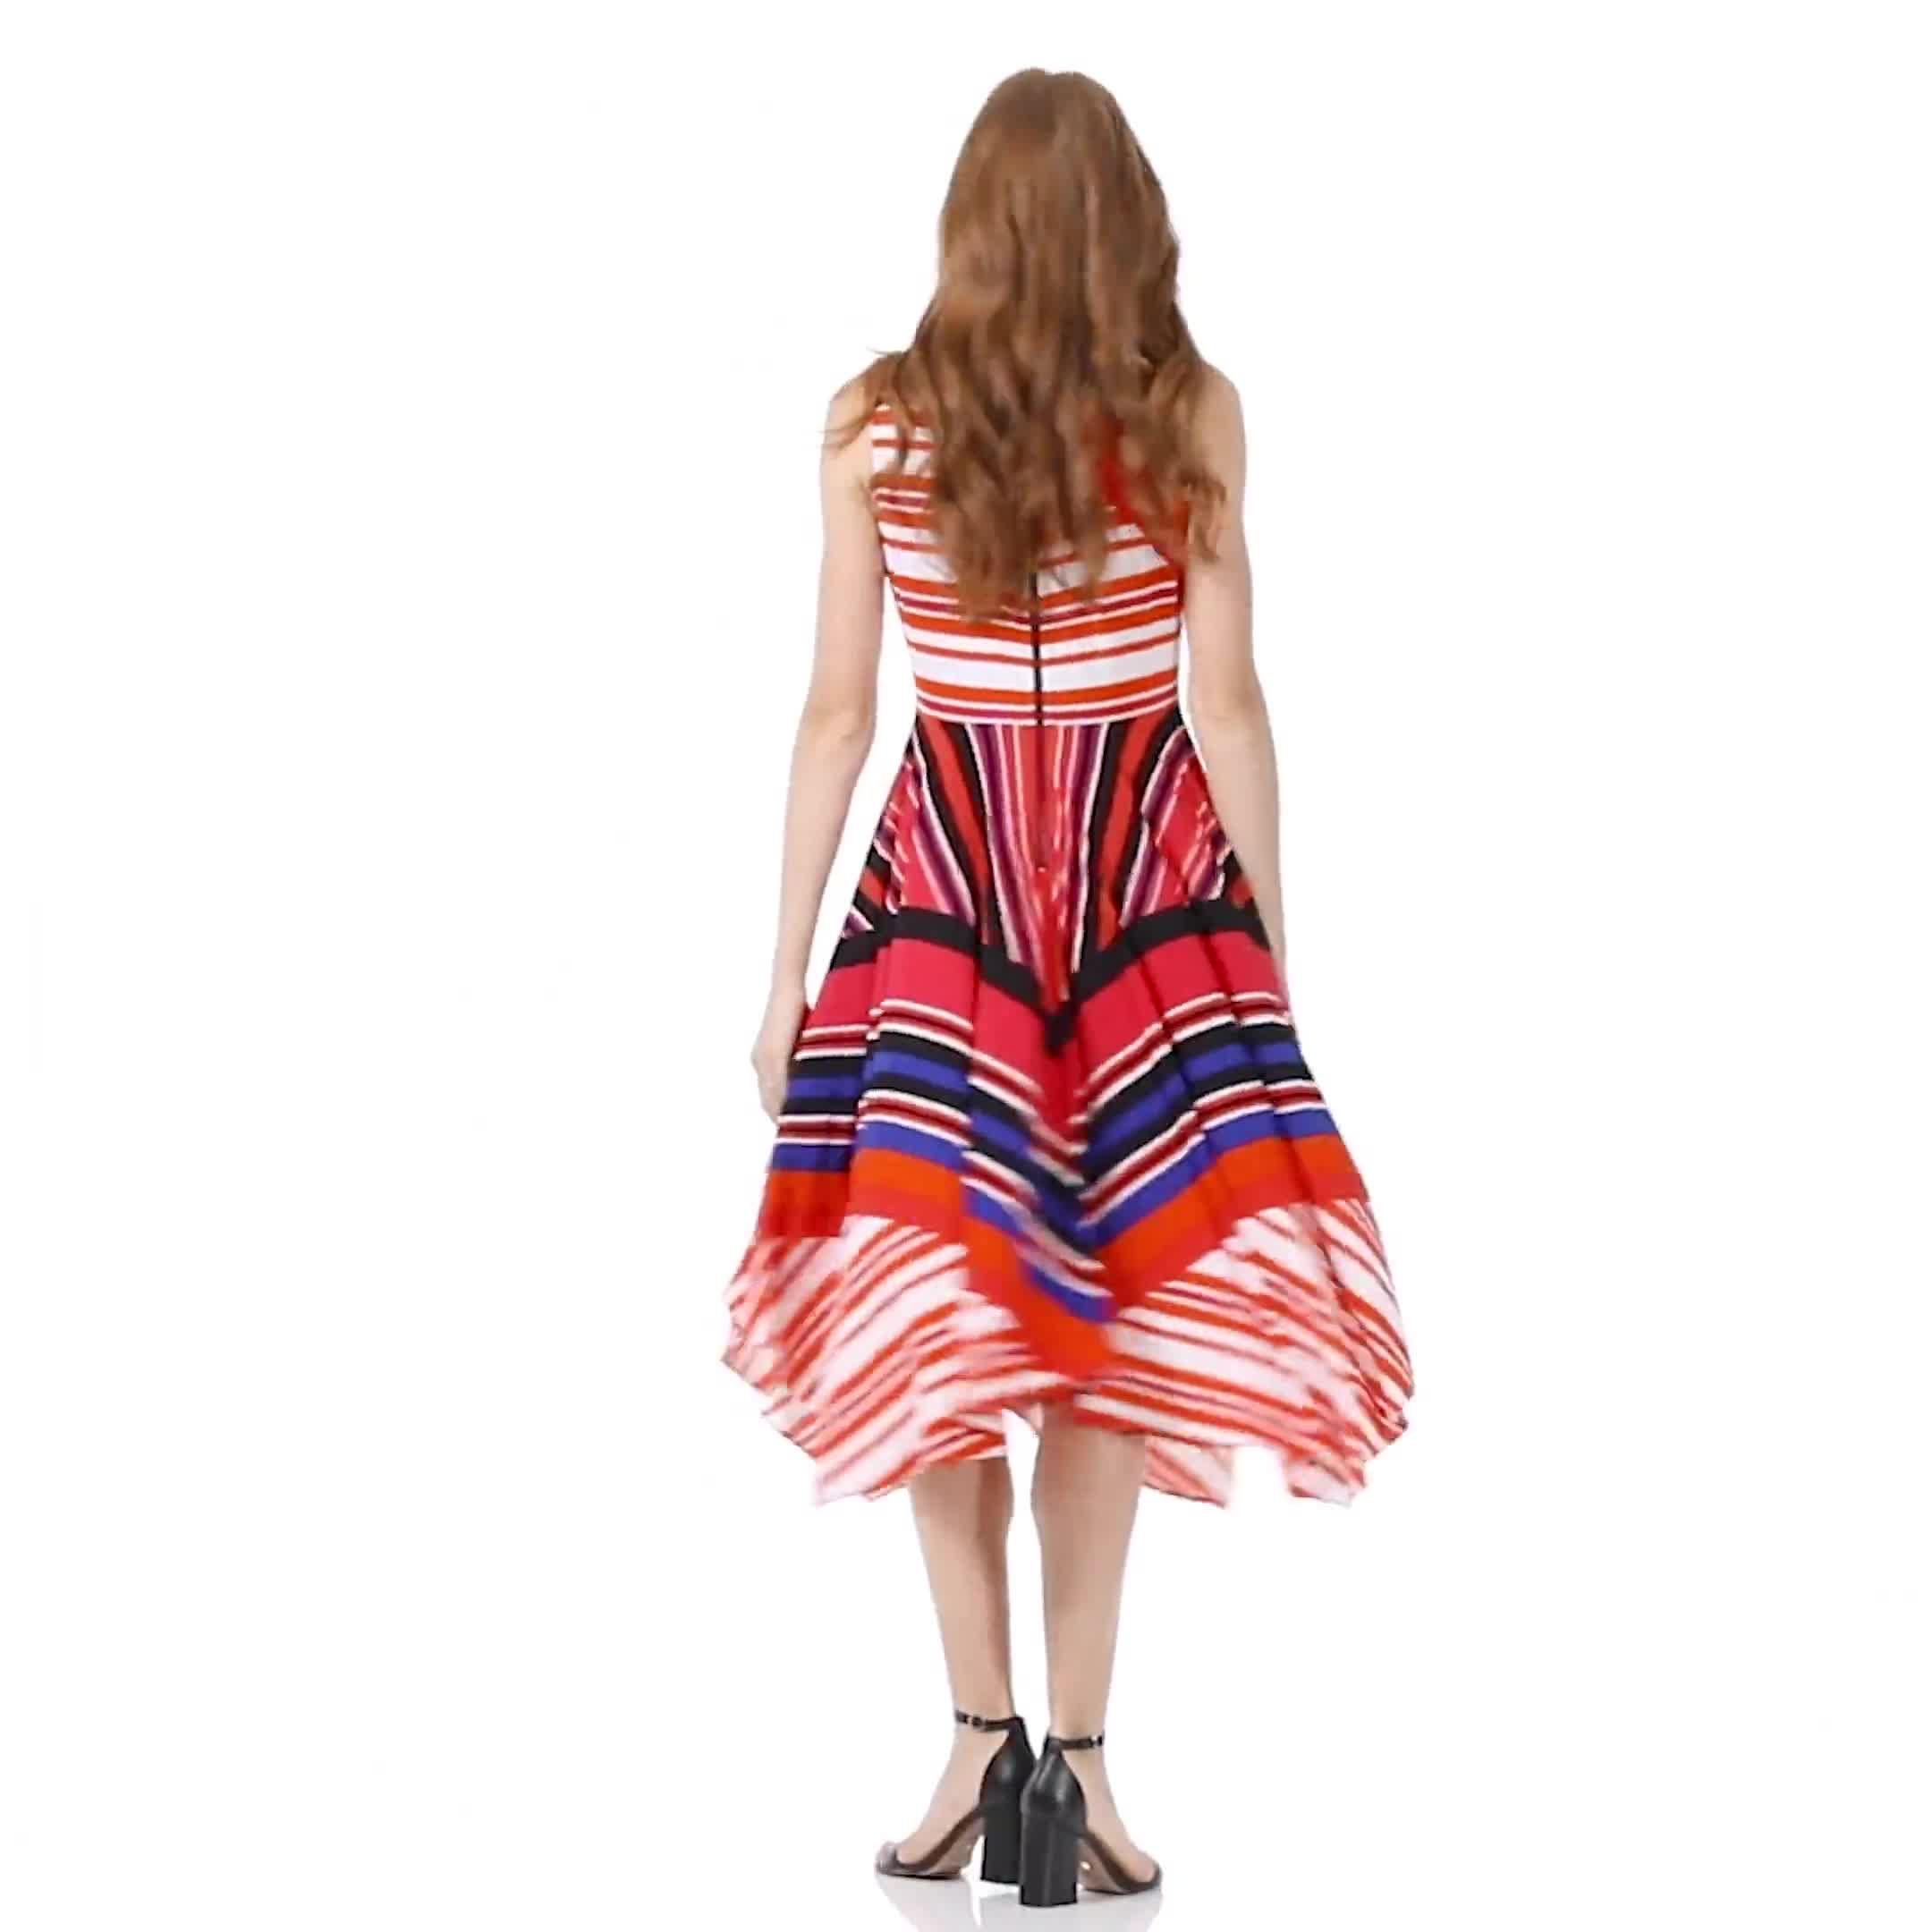 Colorful Striped Dress - Video